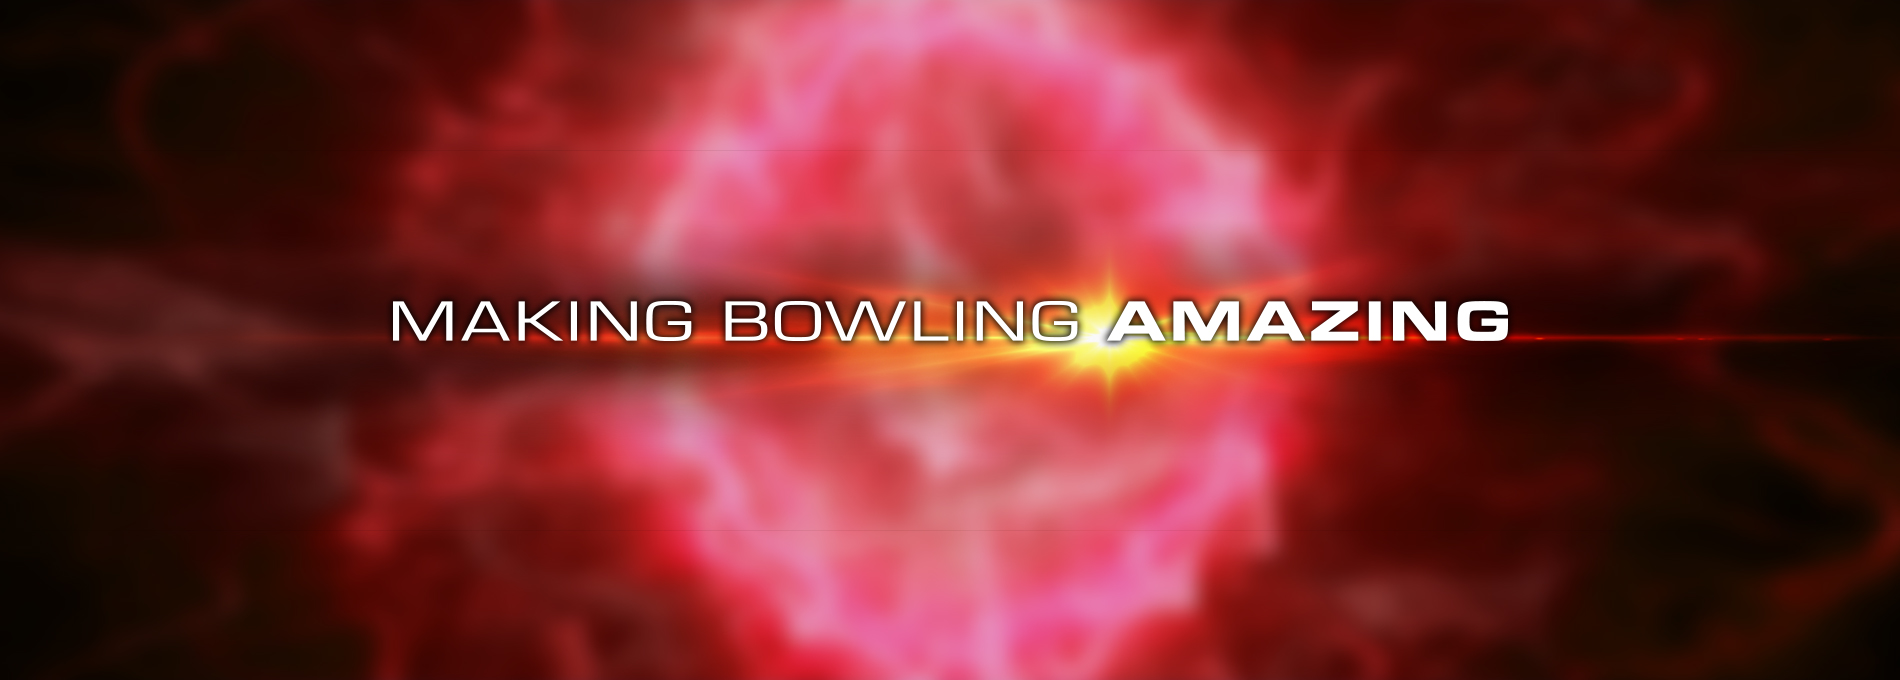 qubicaamf bowling Making Bowling Amazing explosion home banner